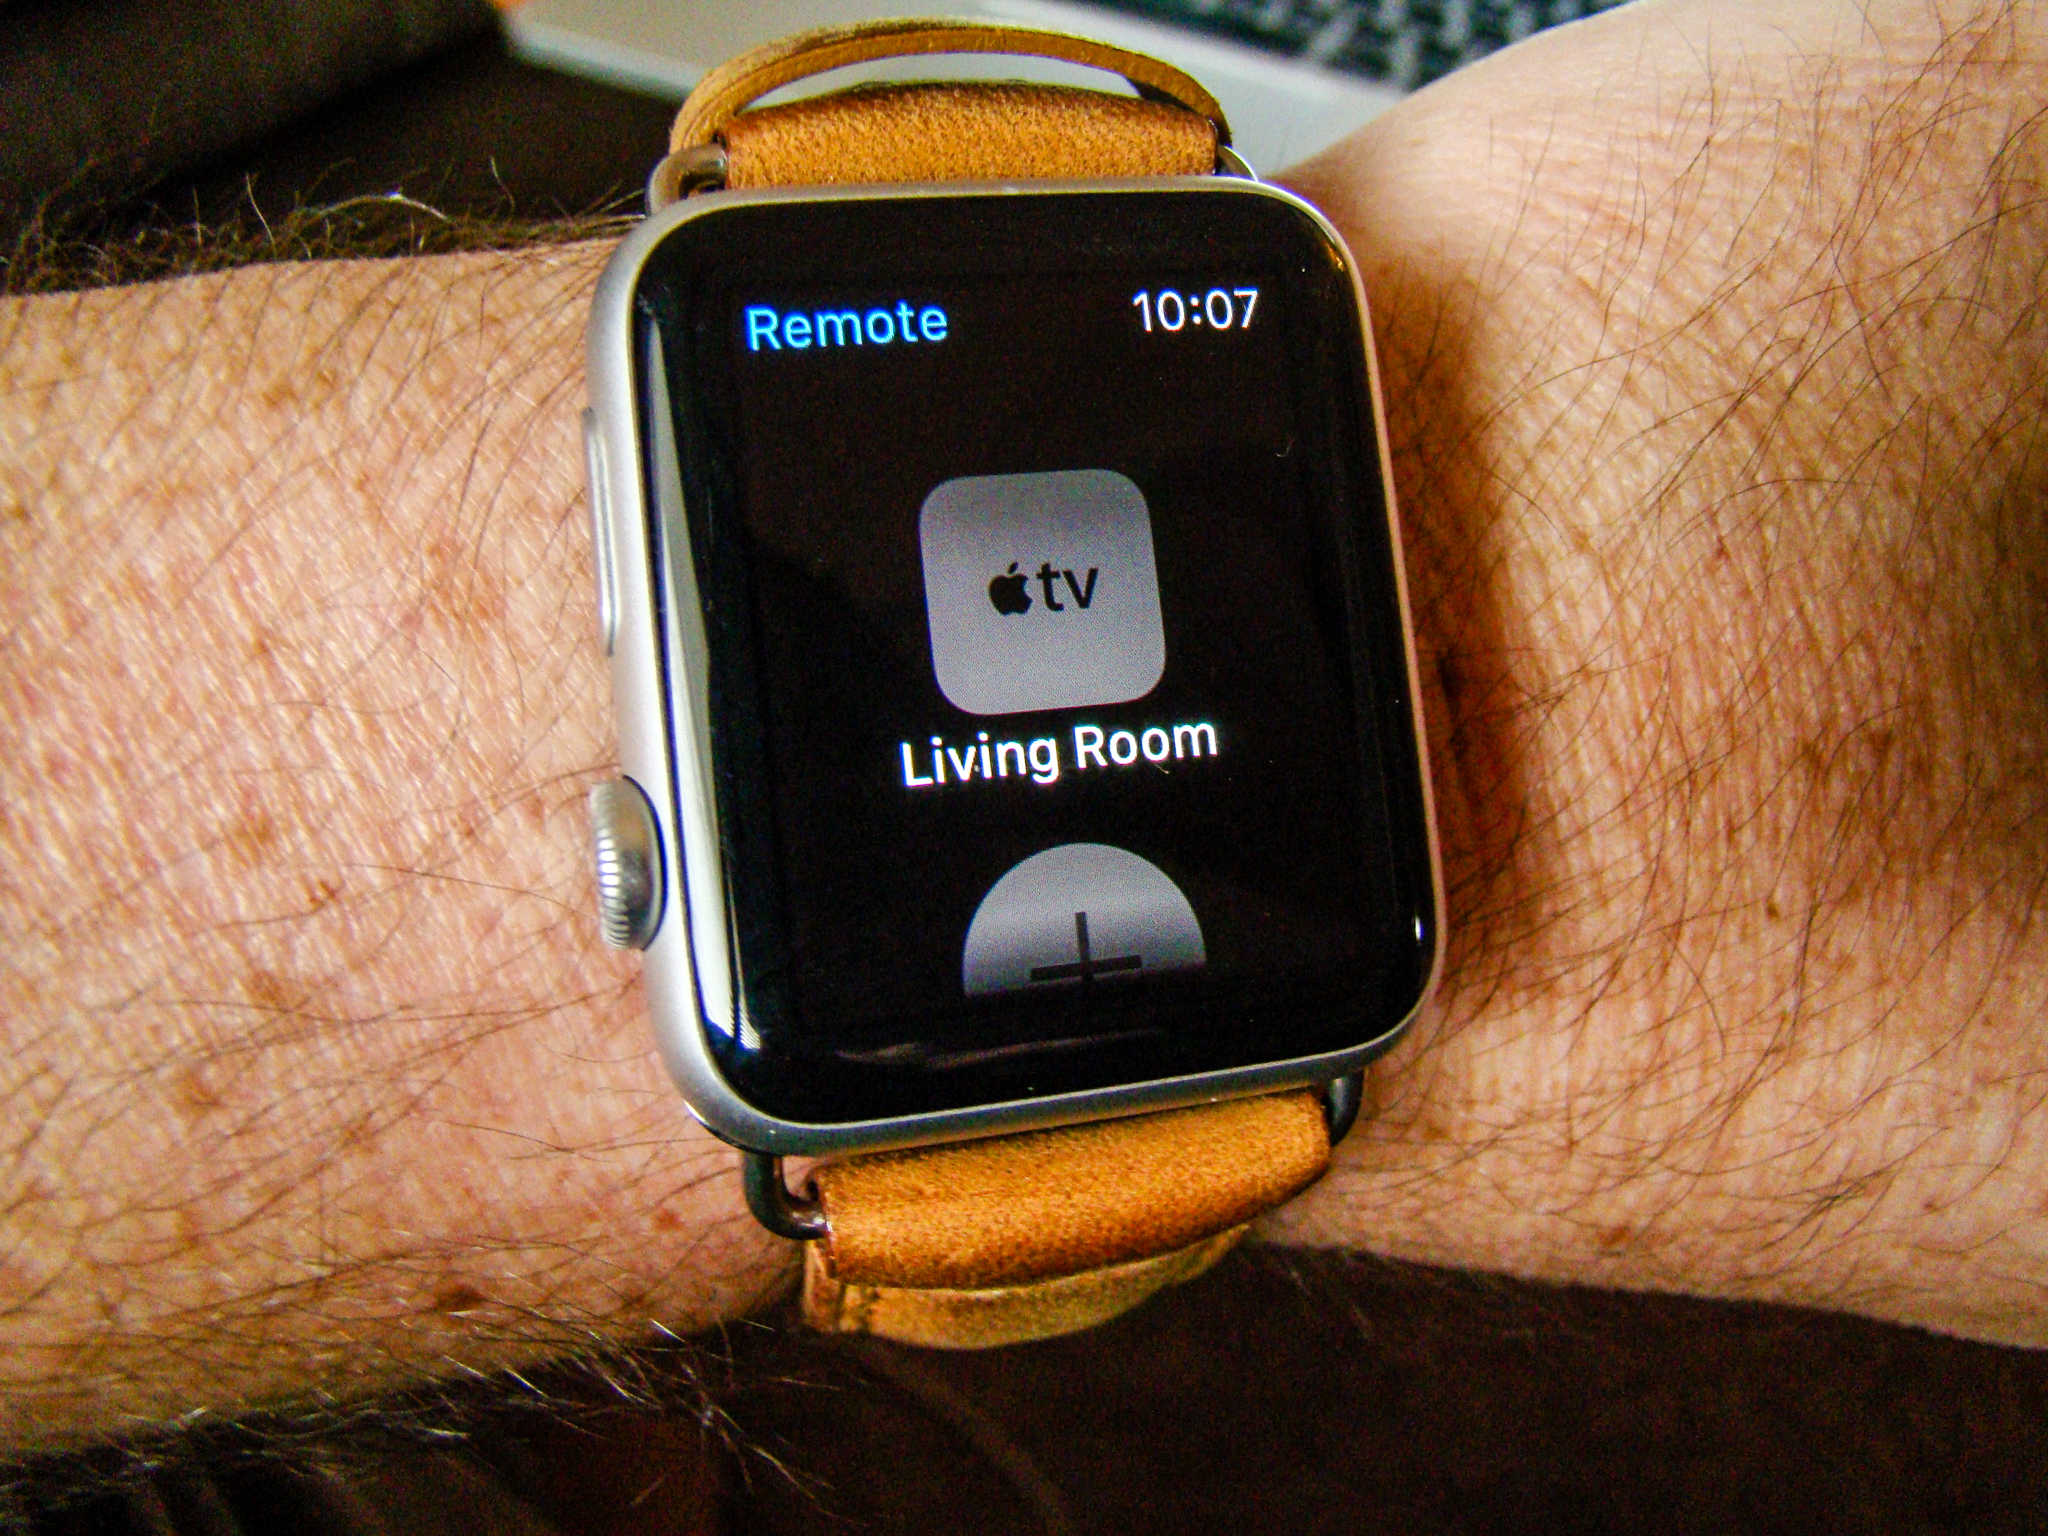 Control your Apple TV from your Apple Watch.